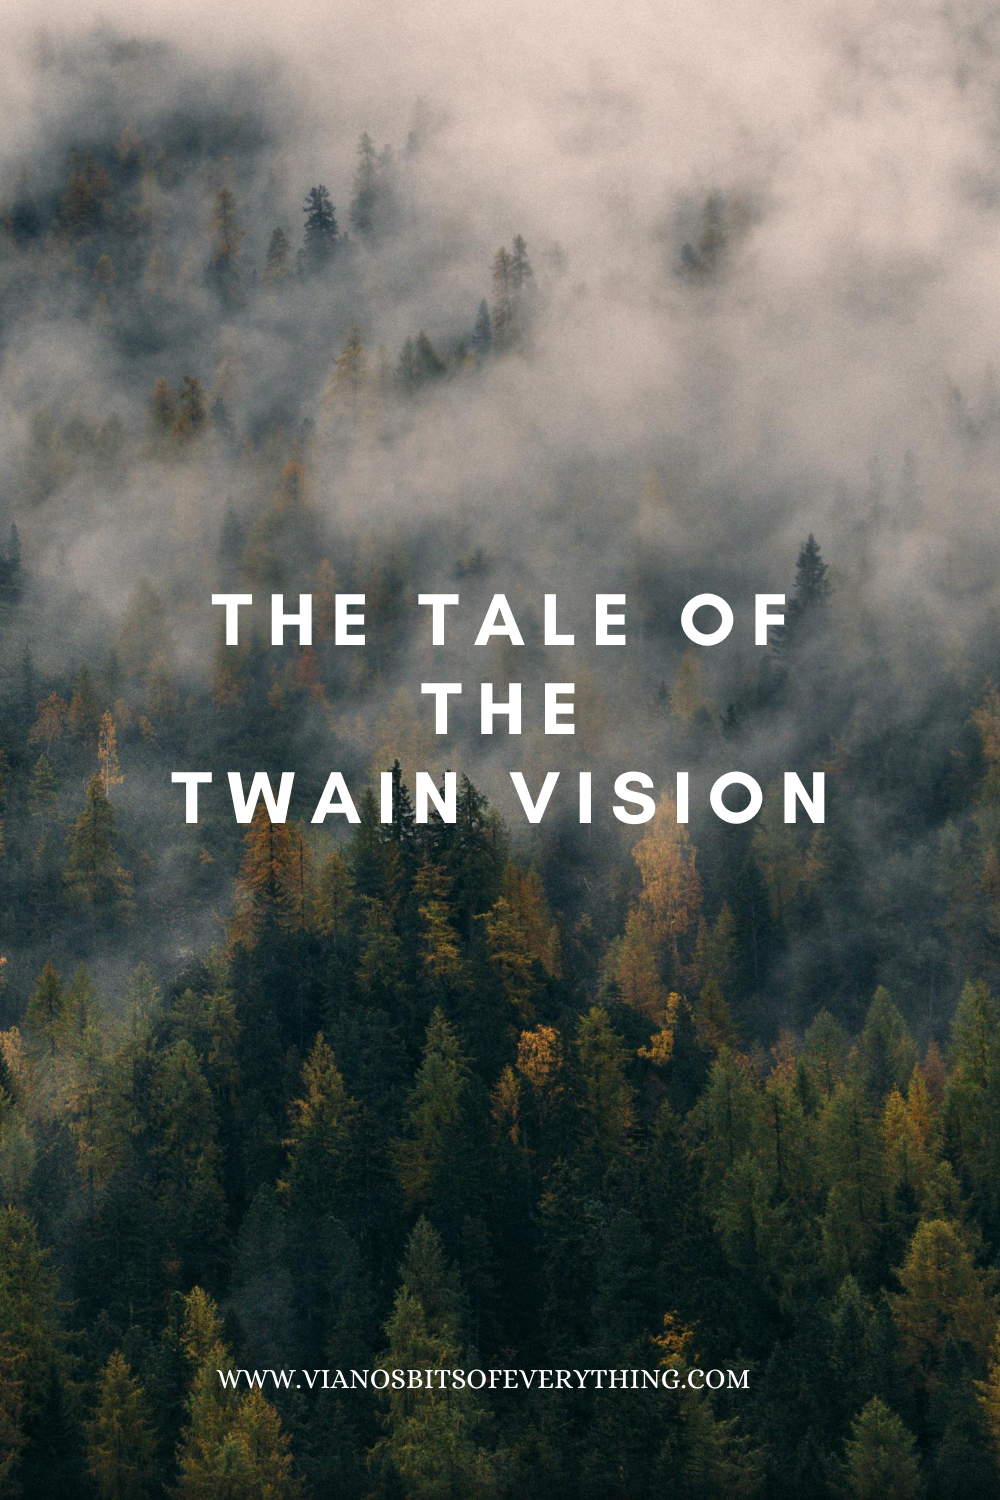 The Tale Of The Twain Vision